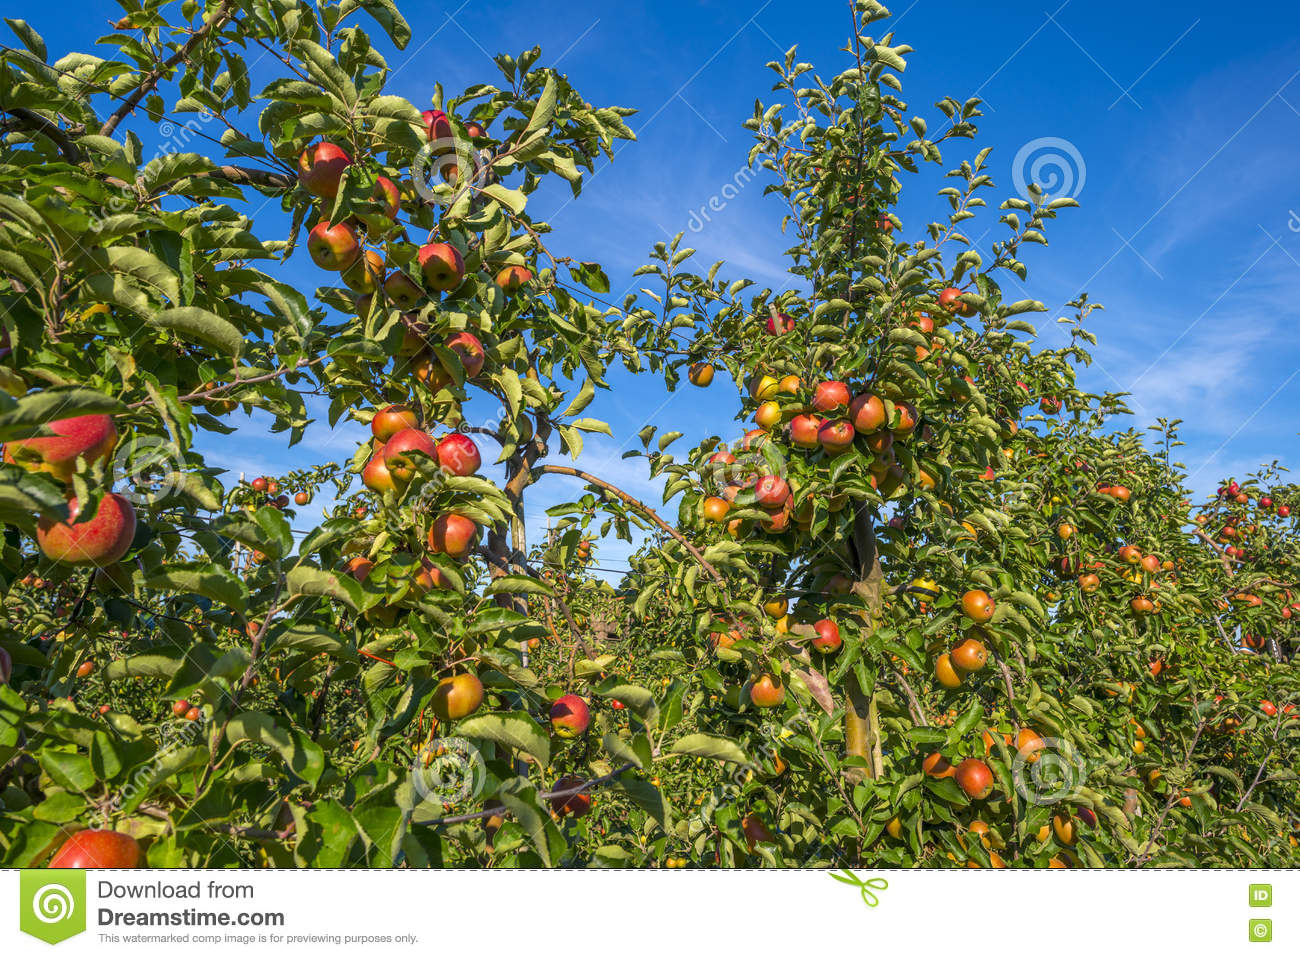 Orchard with apple trees in a field